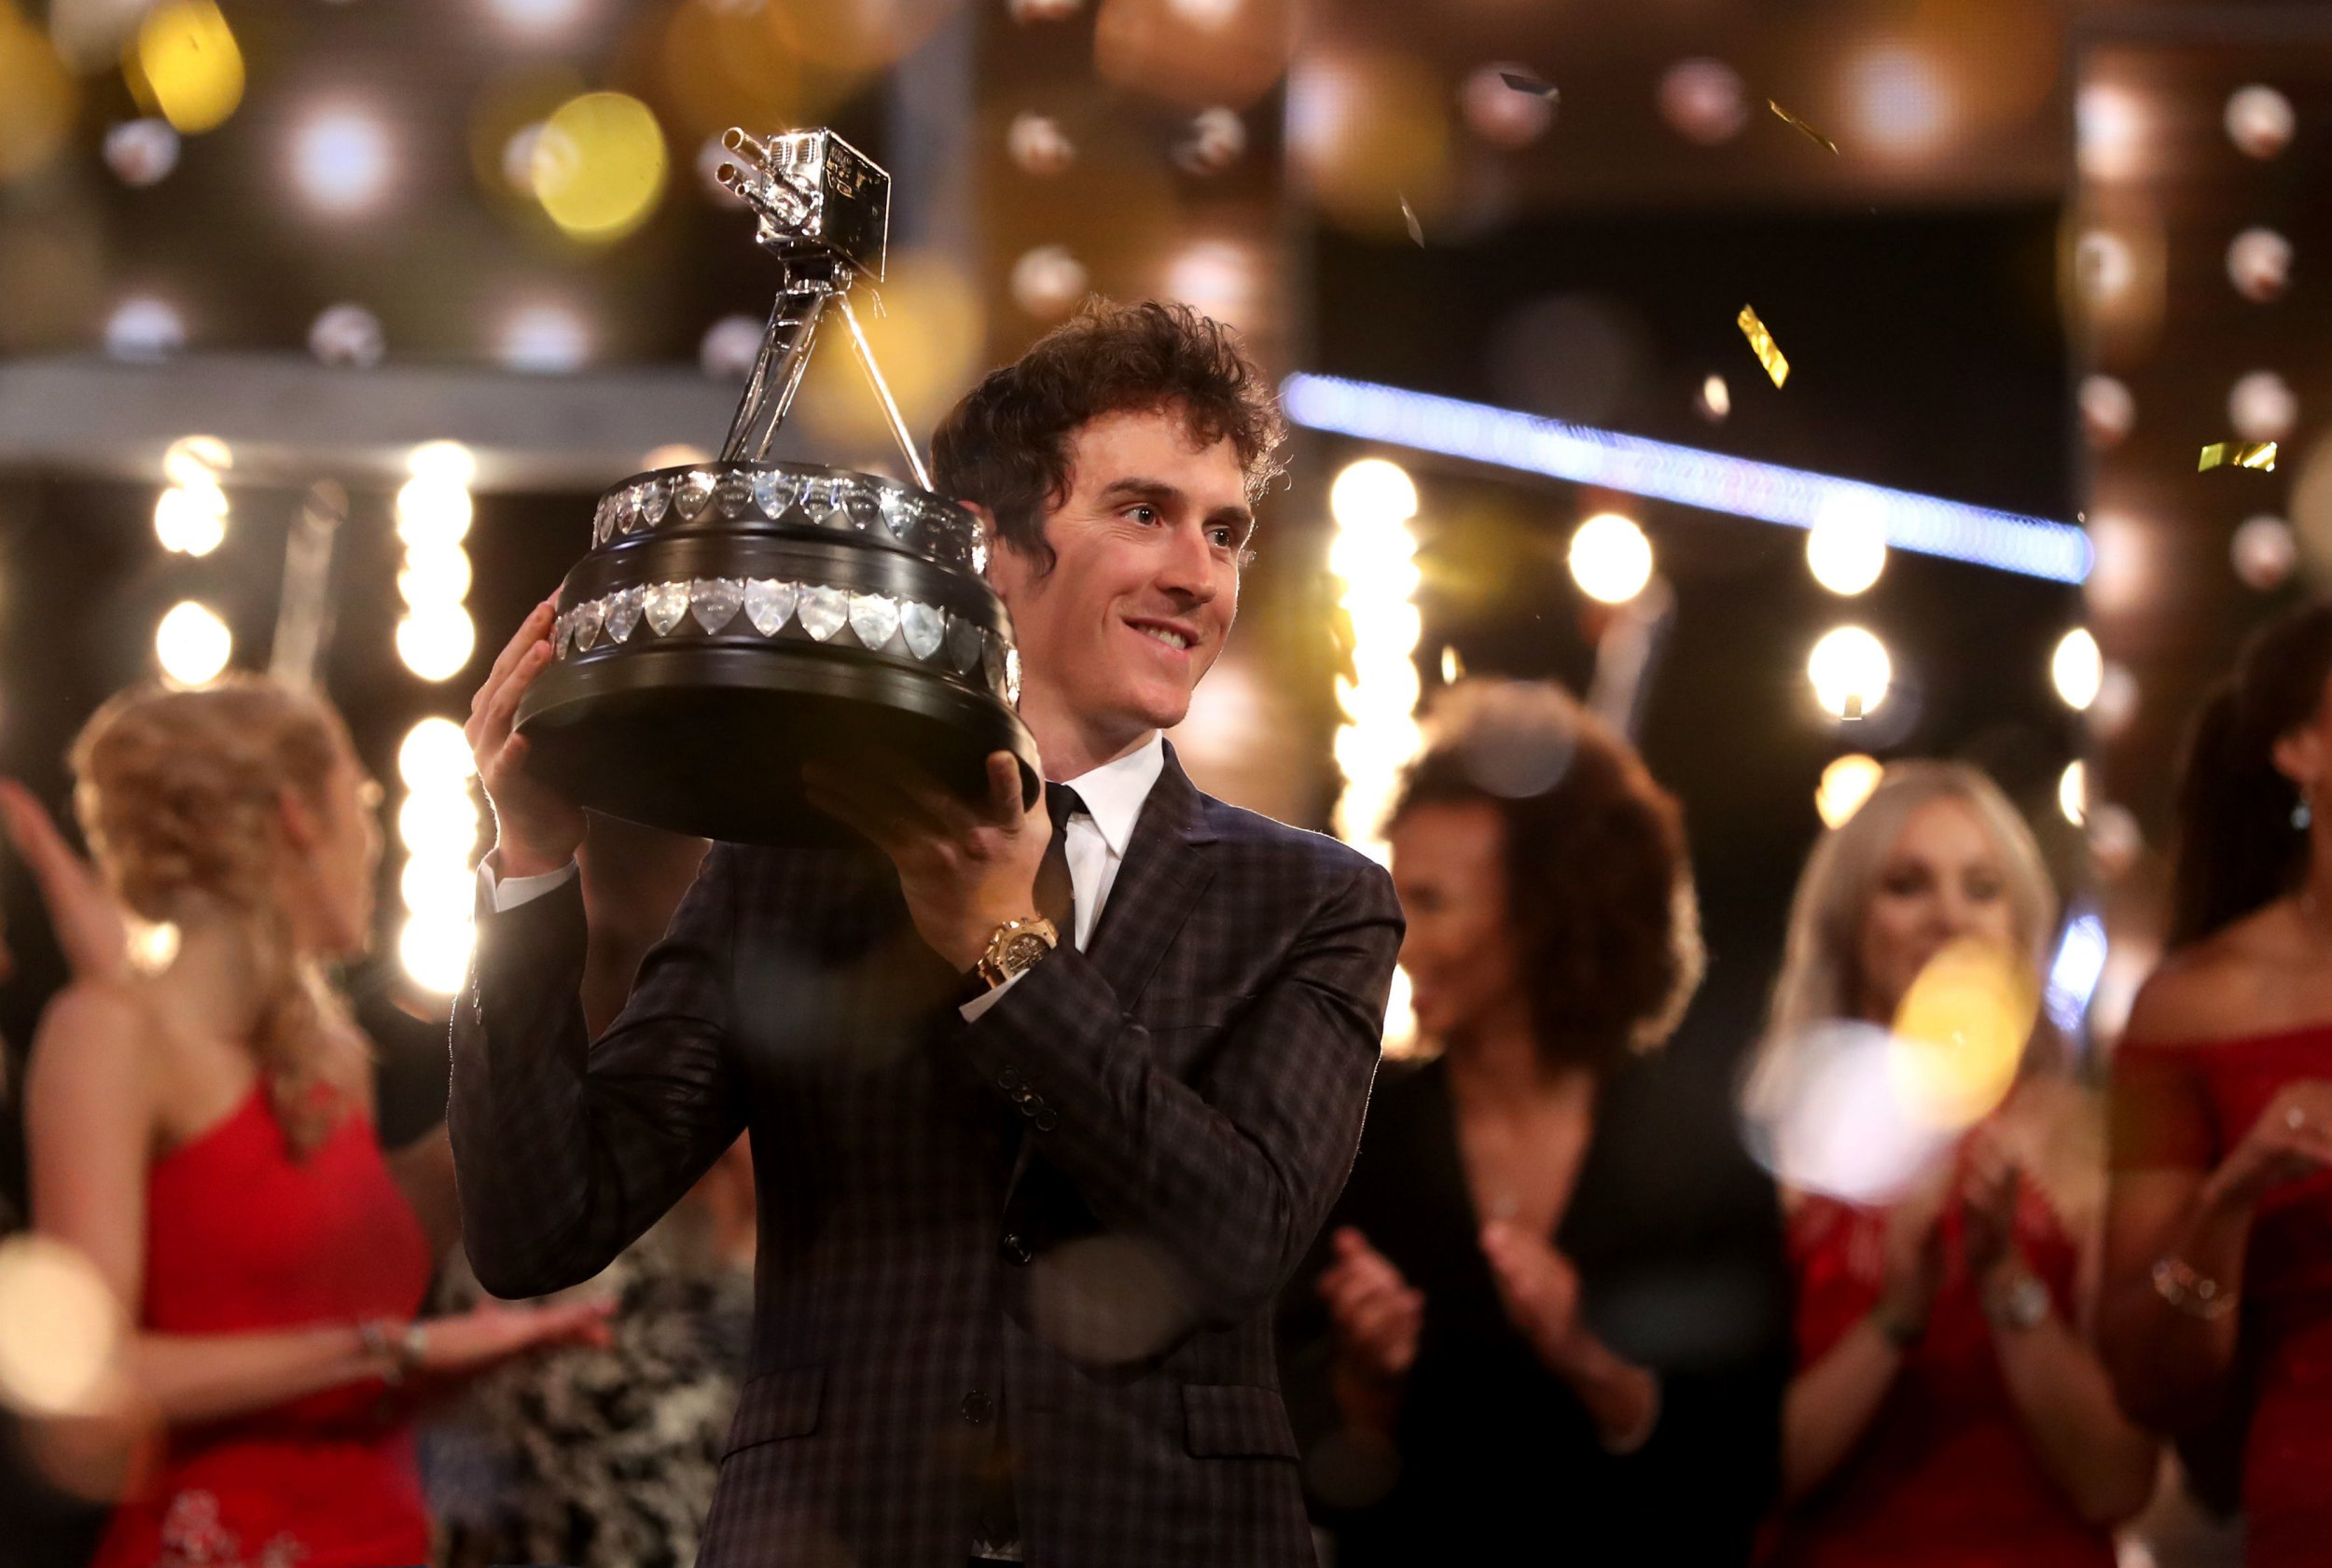 Geraint Thomas poses after winning the BBC Sports Personality of the Year award during the BBC Sports Personality of the Year 2018 at Birmingham Genting Arena. PRESS ASSOCIATION Photo. Picture date: Sunday December 16, 2018. See PA story SPORT Personality. Photo credit should read: David Davies/PA Wire